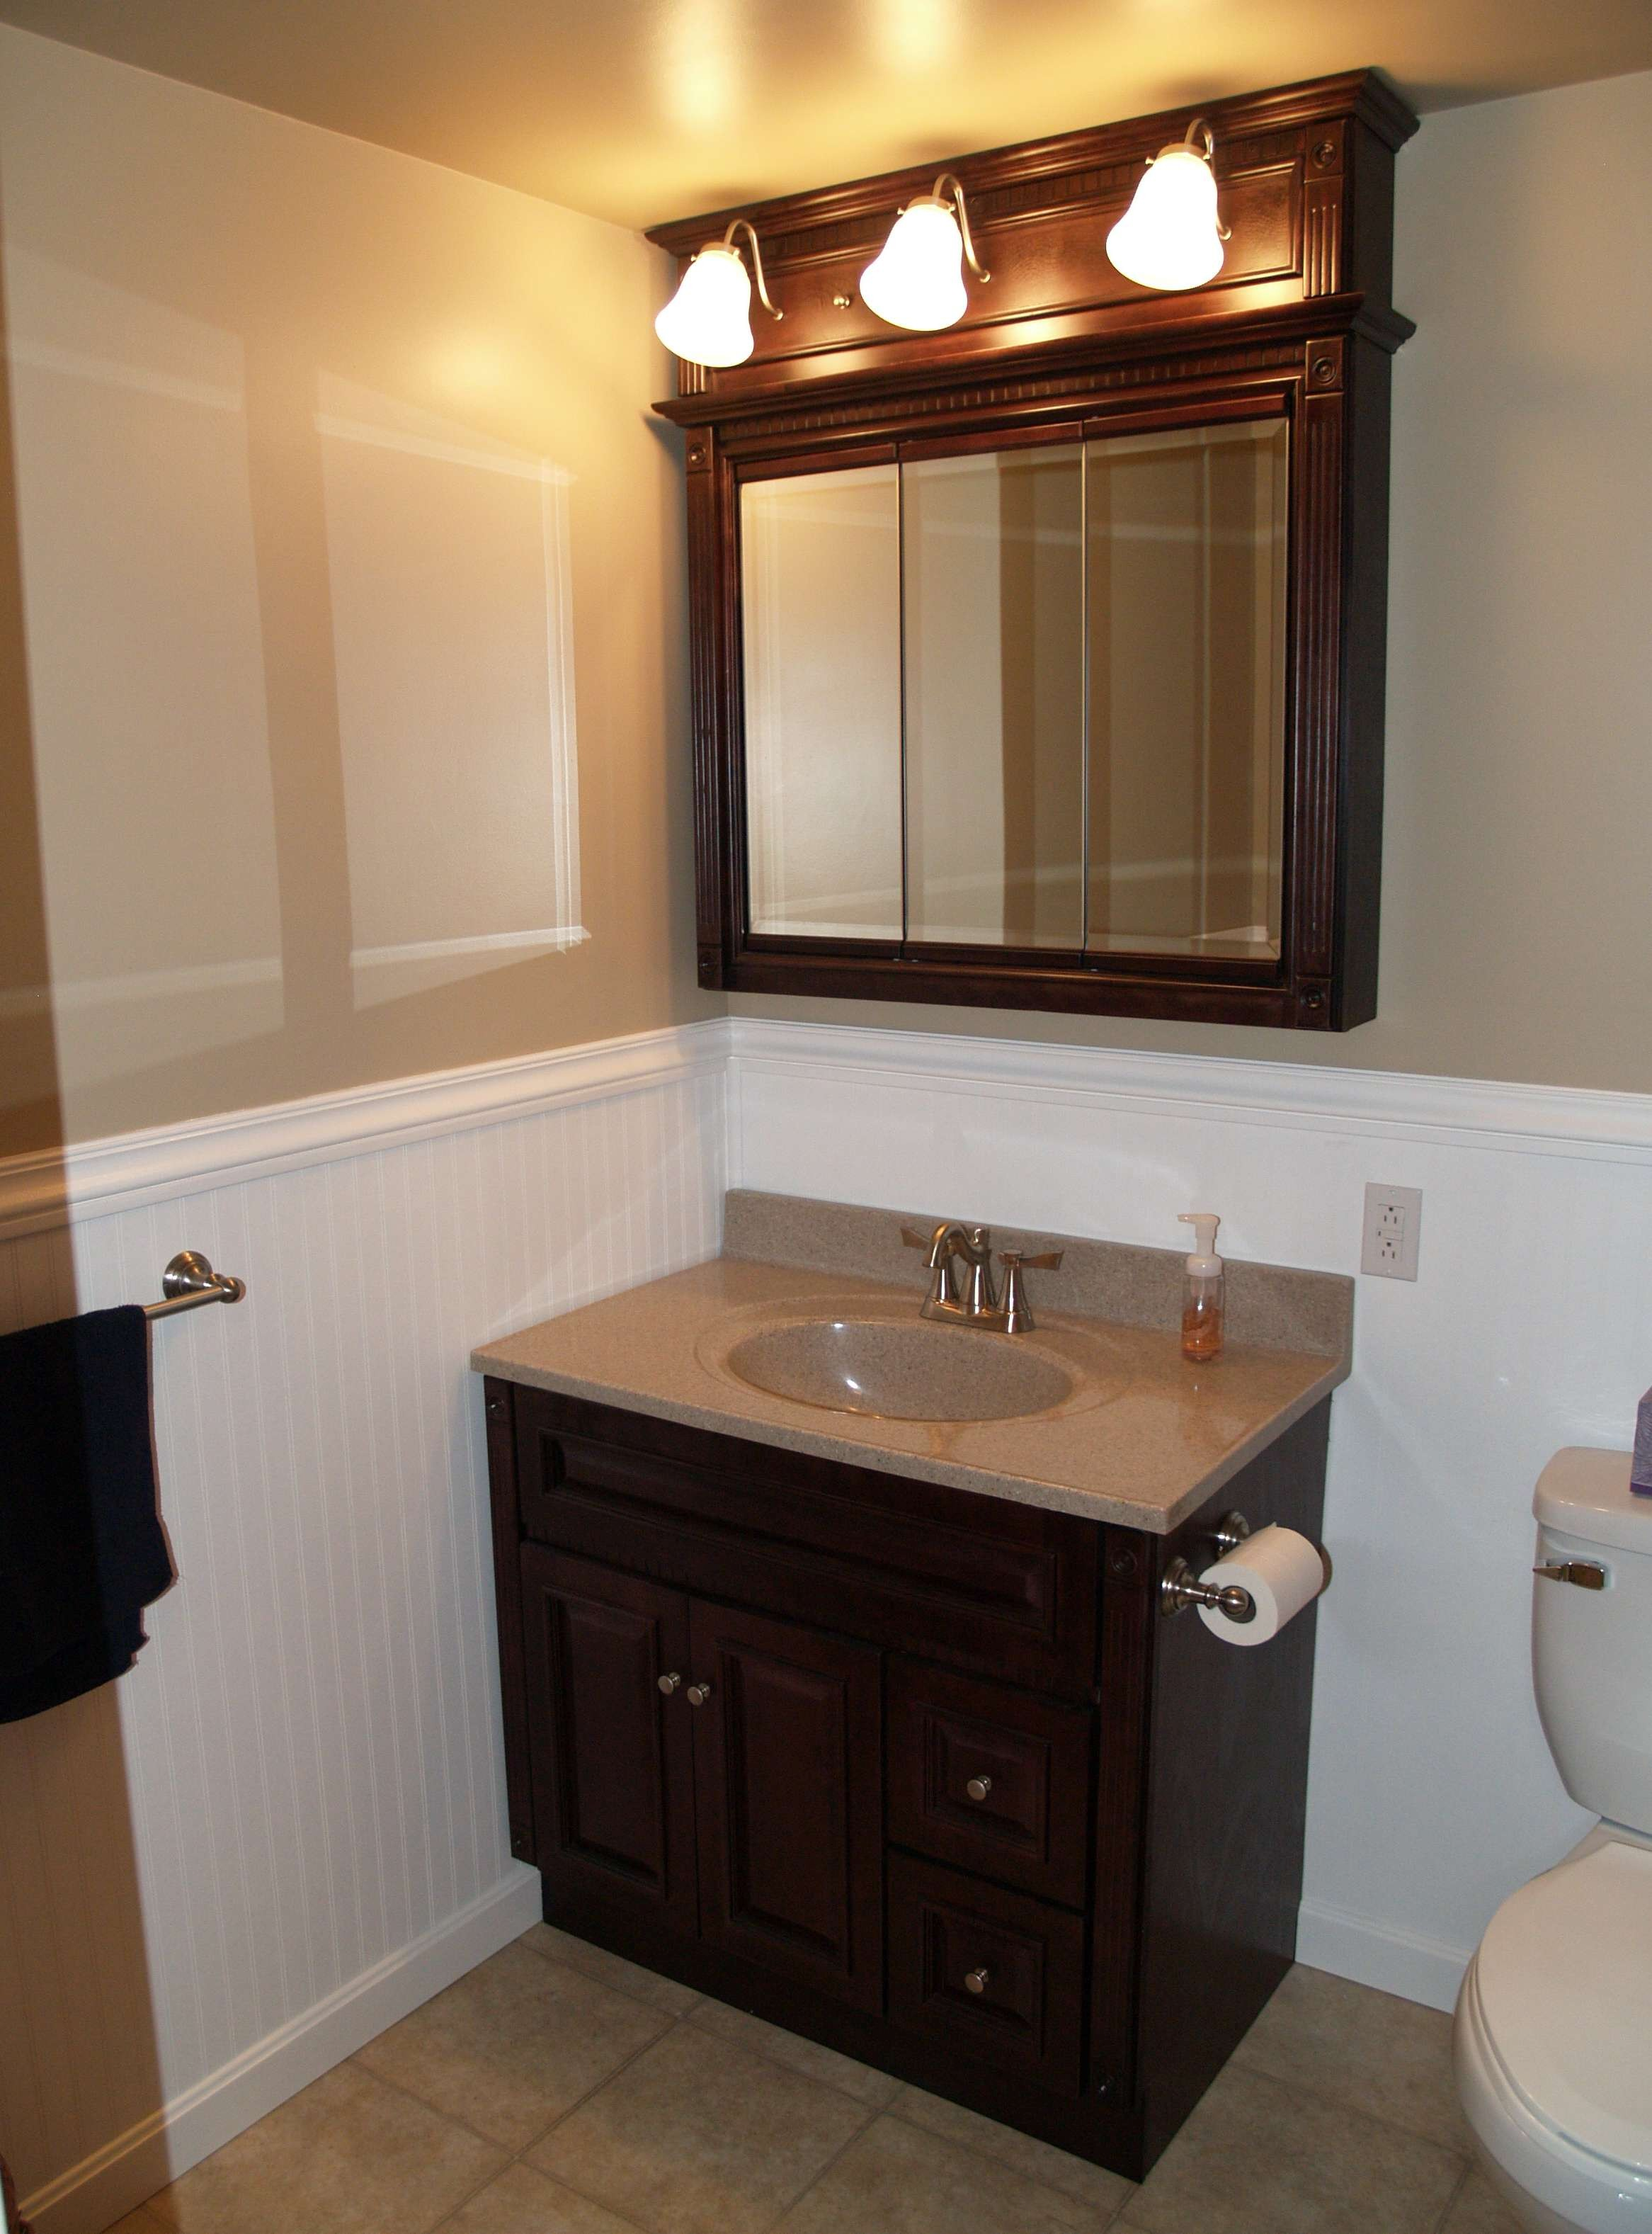 Luxury Bathroom Vanity Warehouse Photo A Lot Of People That Want To Get Home Furniture Just Don T Know How Begin There Are Actually Quite Bit